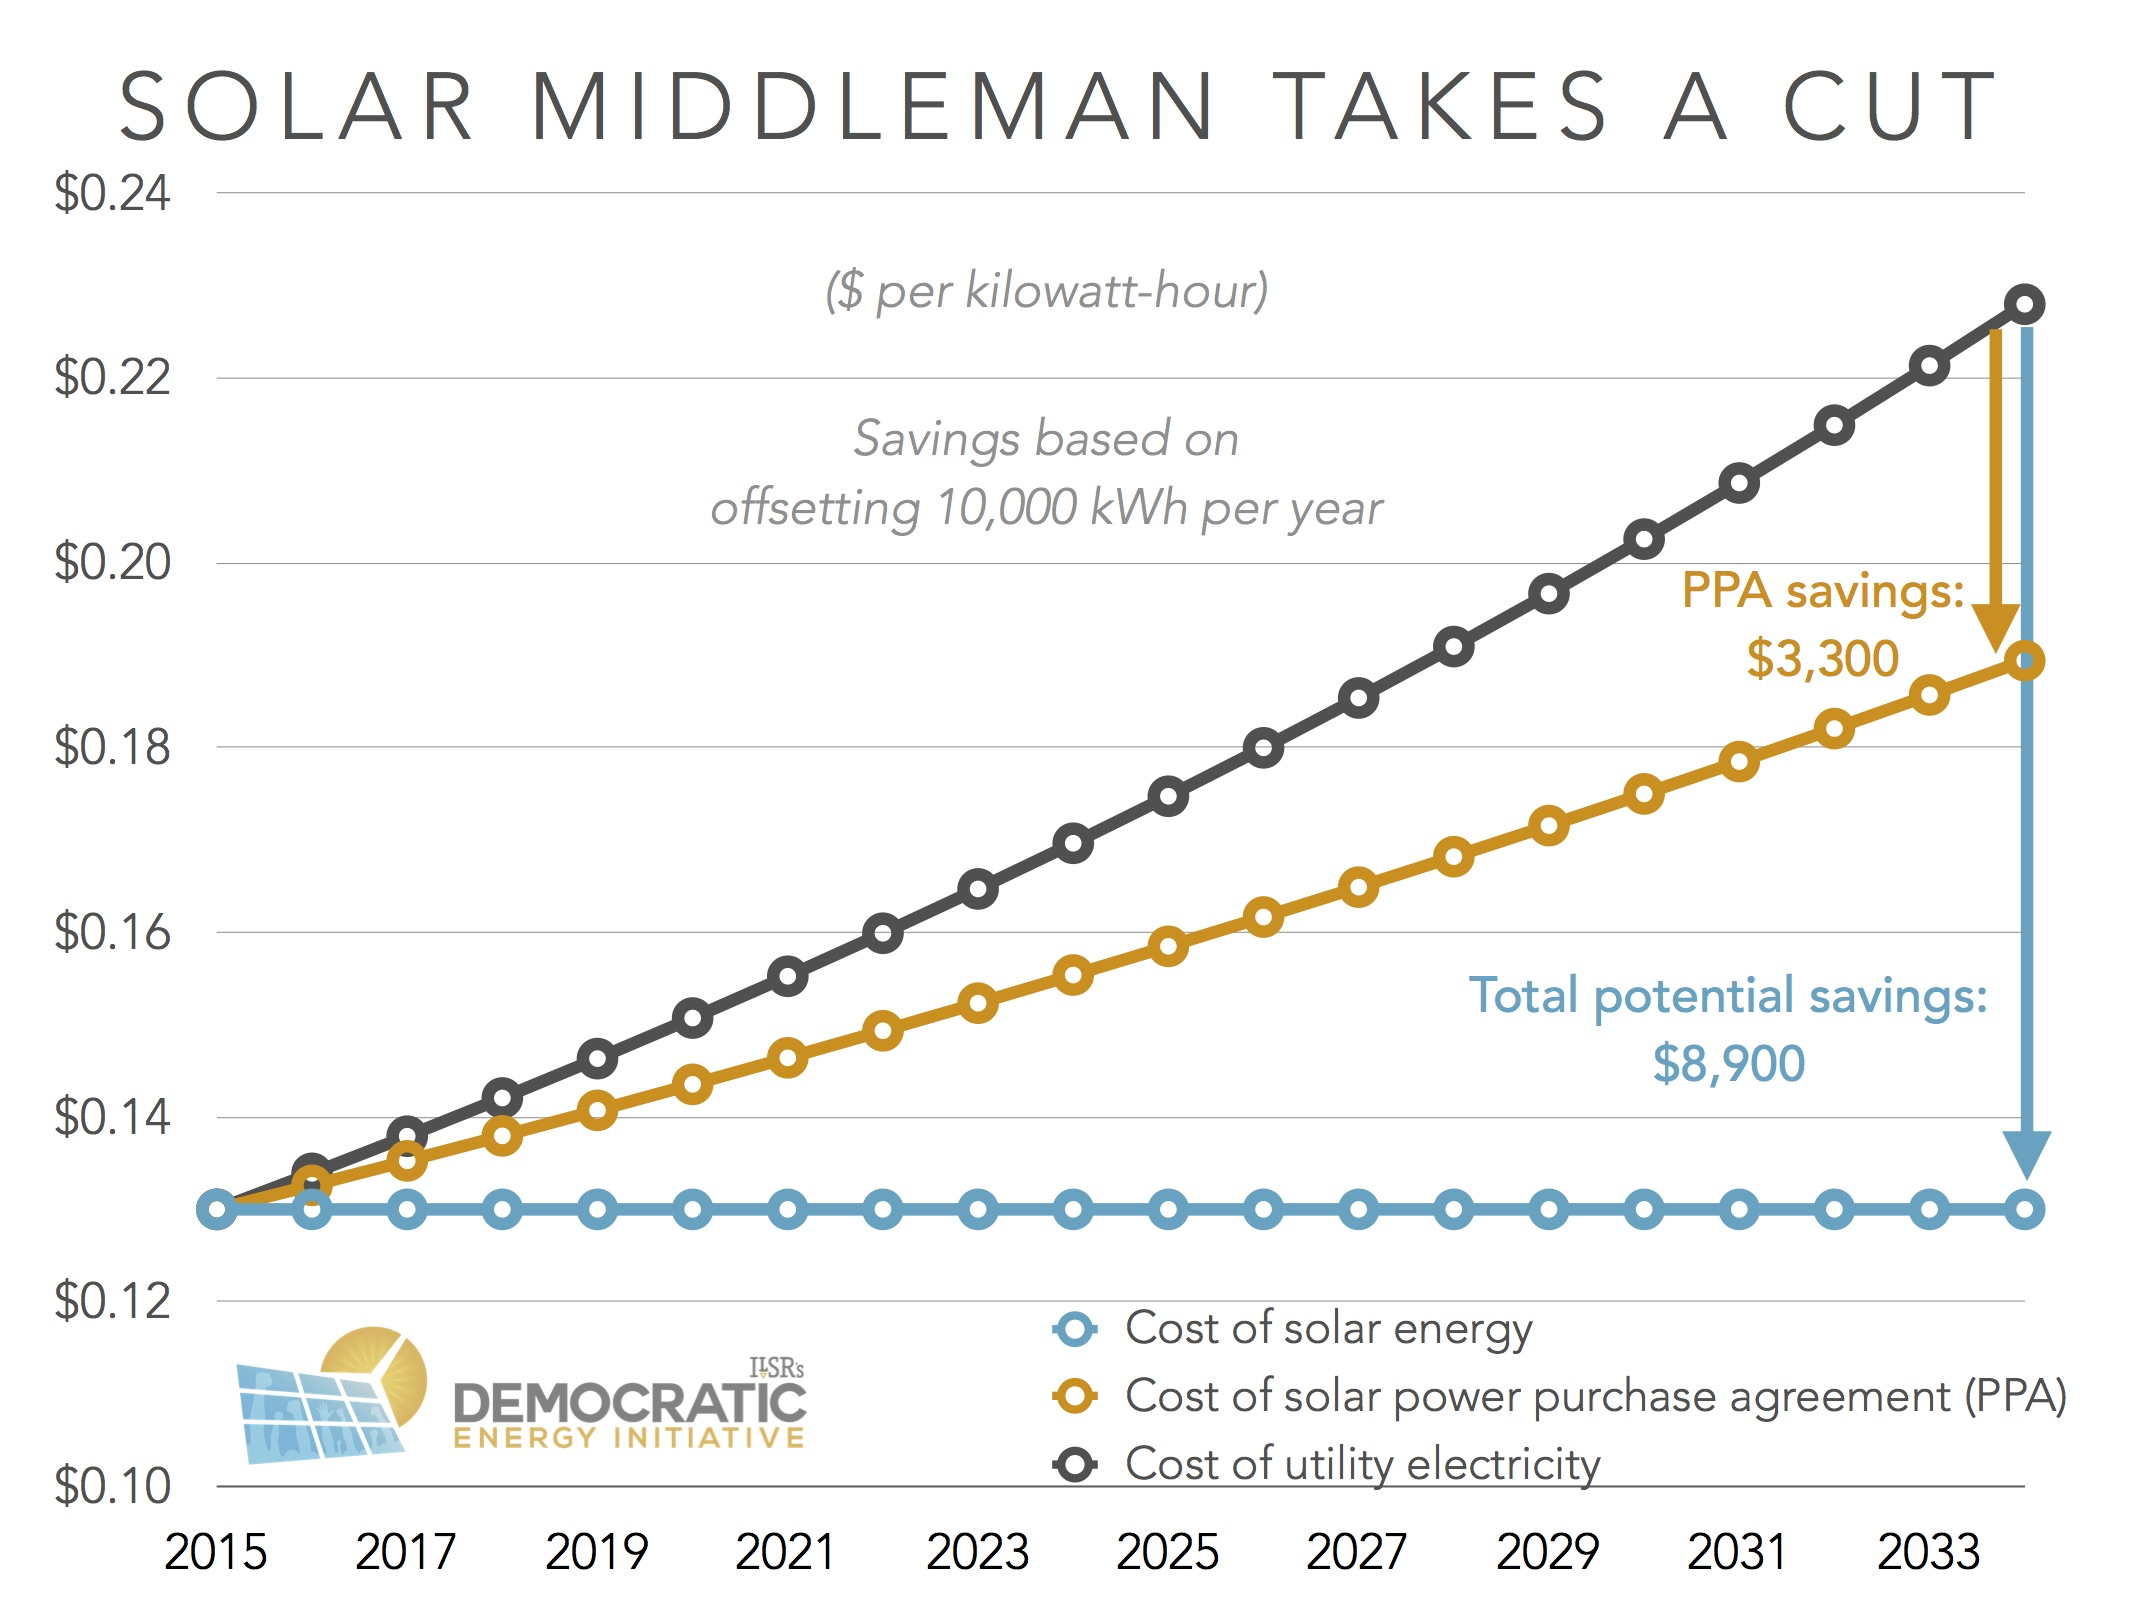 Energy efficient tax credits for 2015 - Solar Savings Ppa V Ownership Ilsr